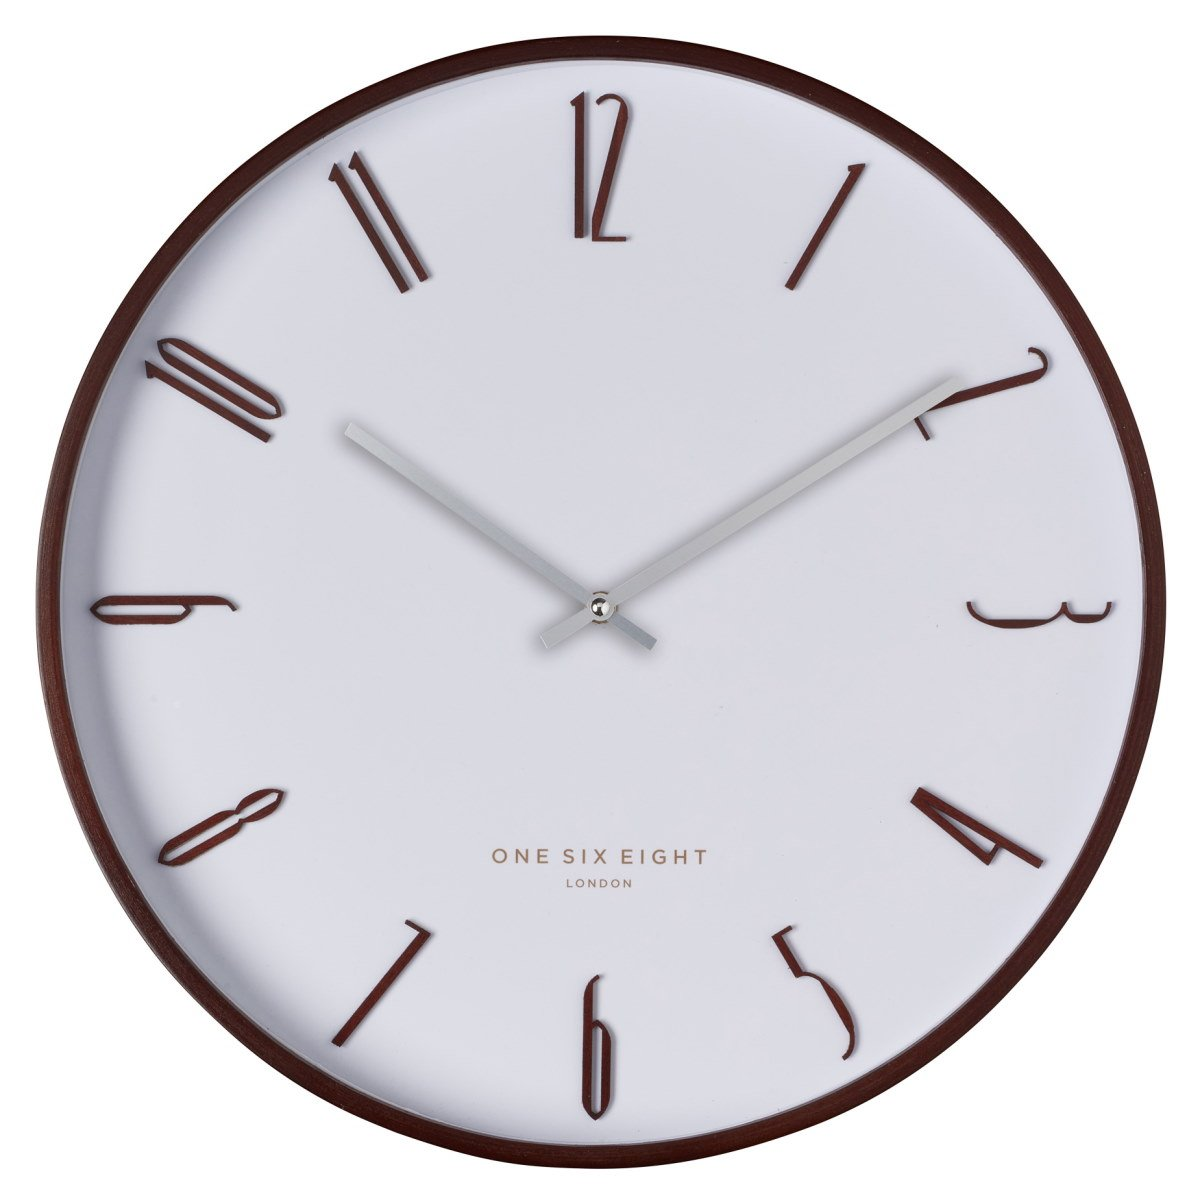 One Six Eight London Archie Wooden Wall Clock White 53cm 24009 1